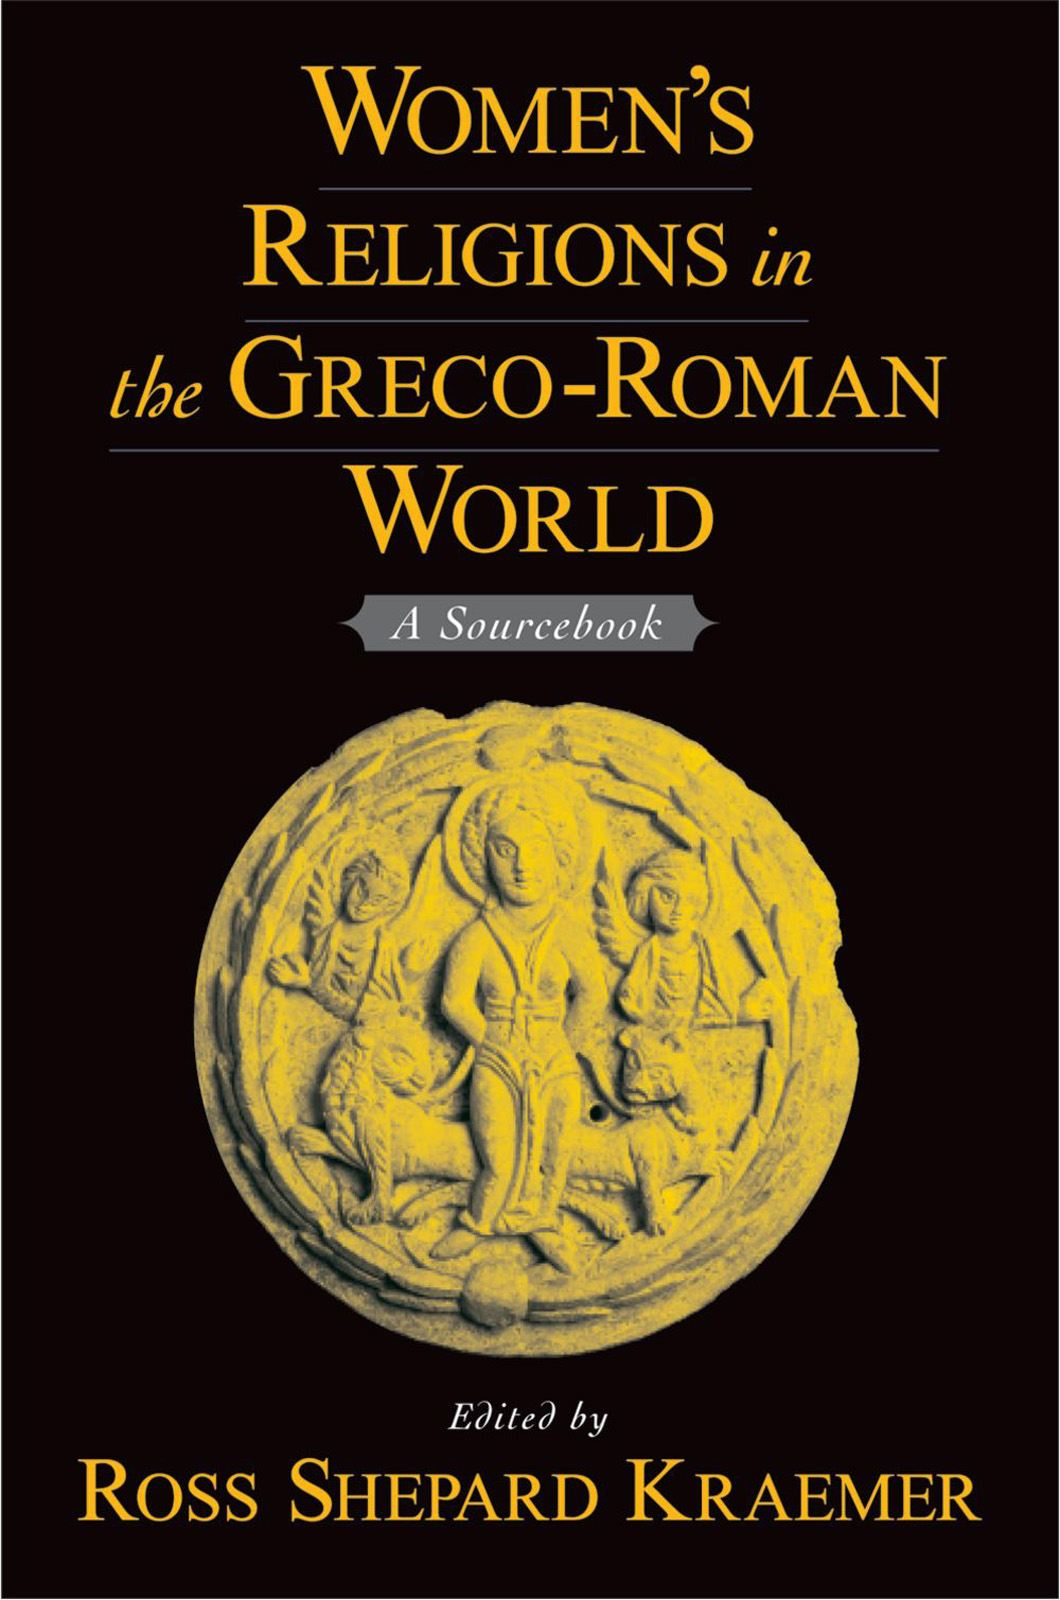 Women's Religions in the Greco-Roman World : A Sourcebook